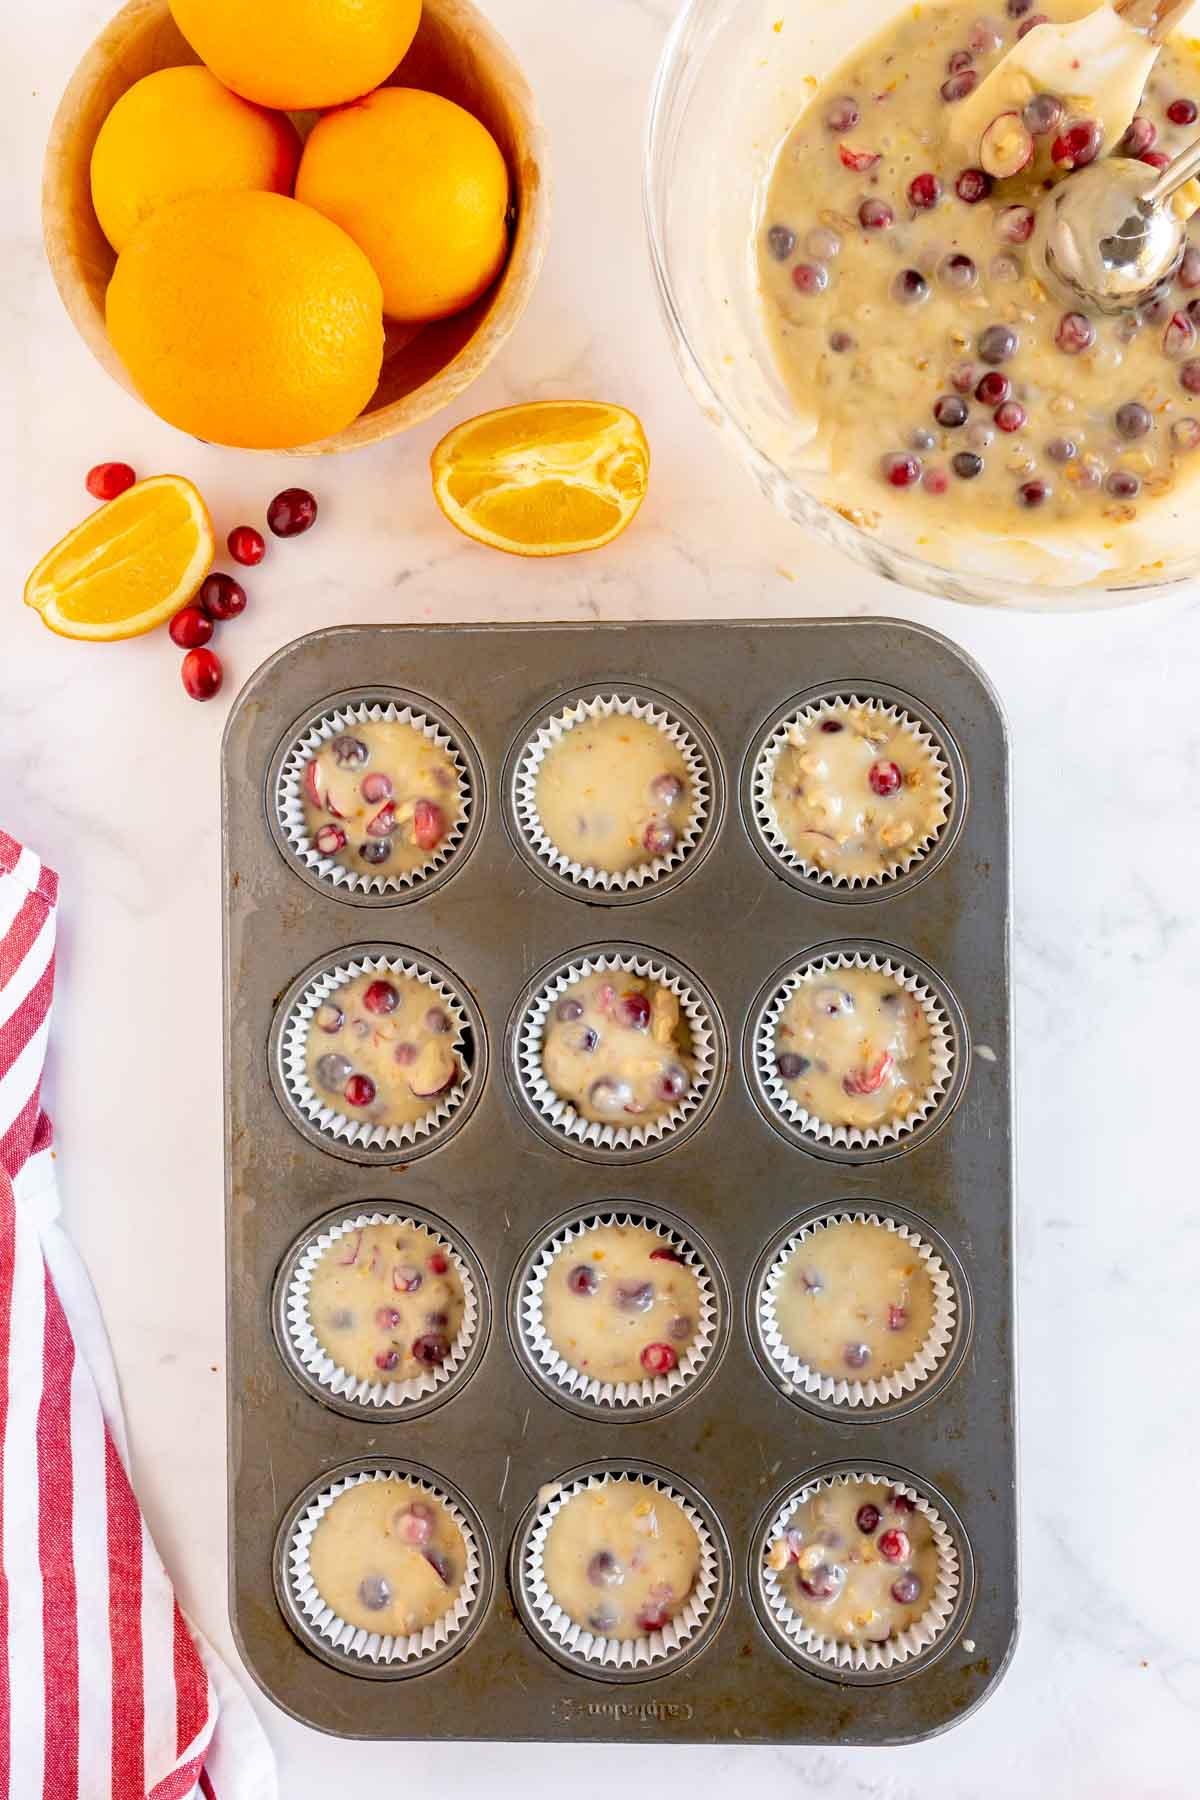 Cranberry orange muffins ready to go into oven